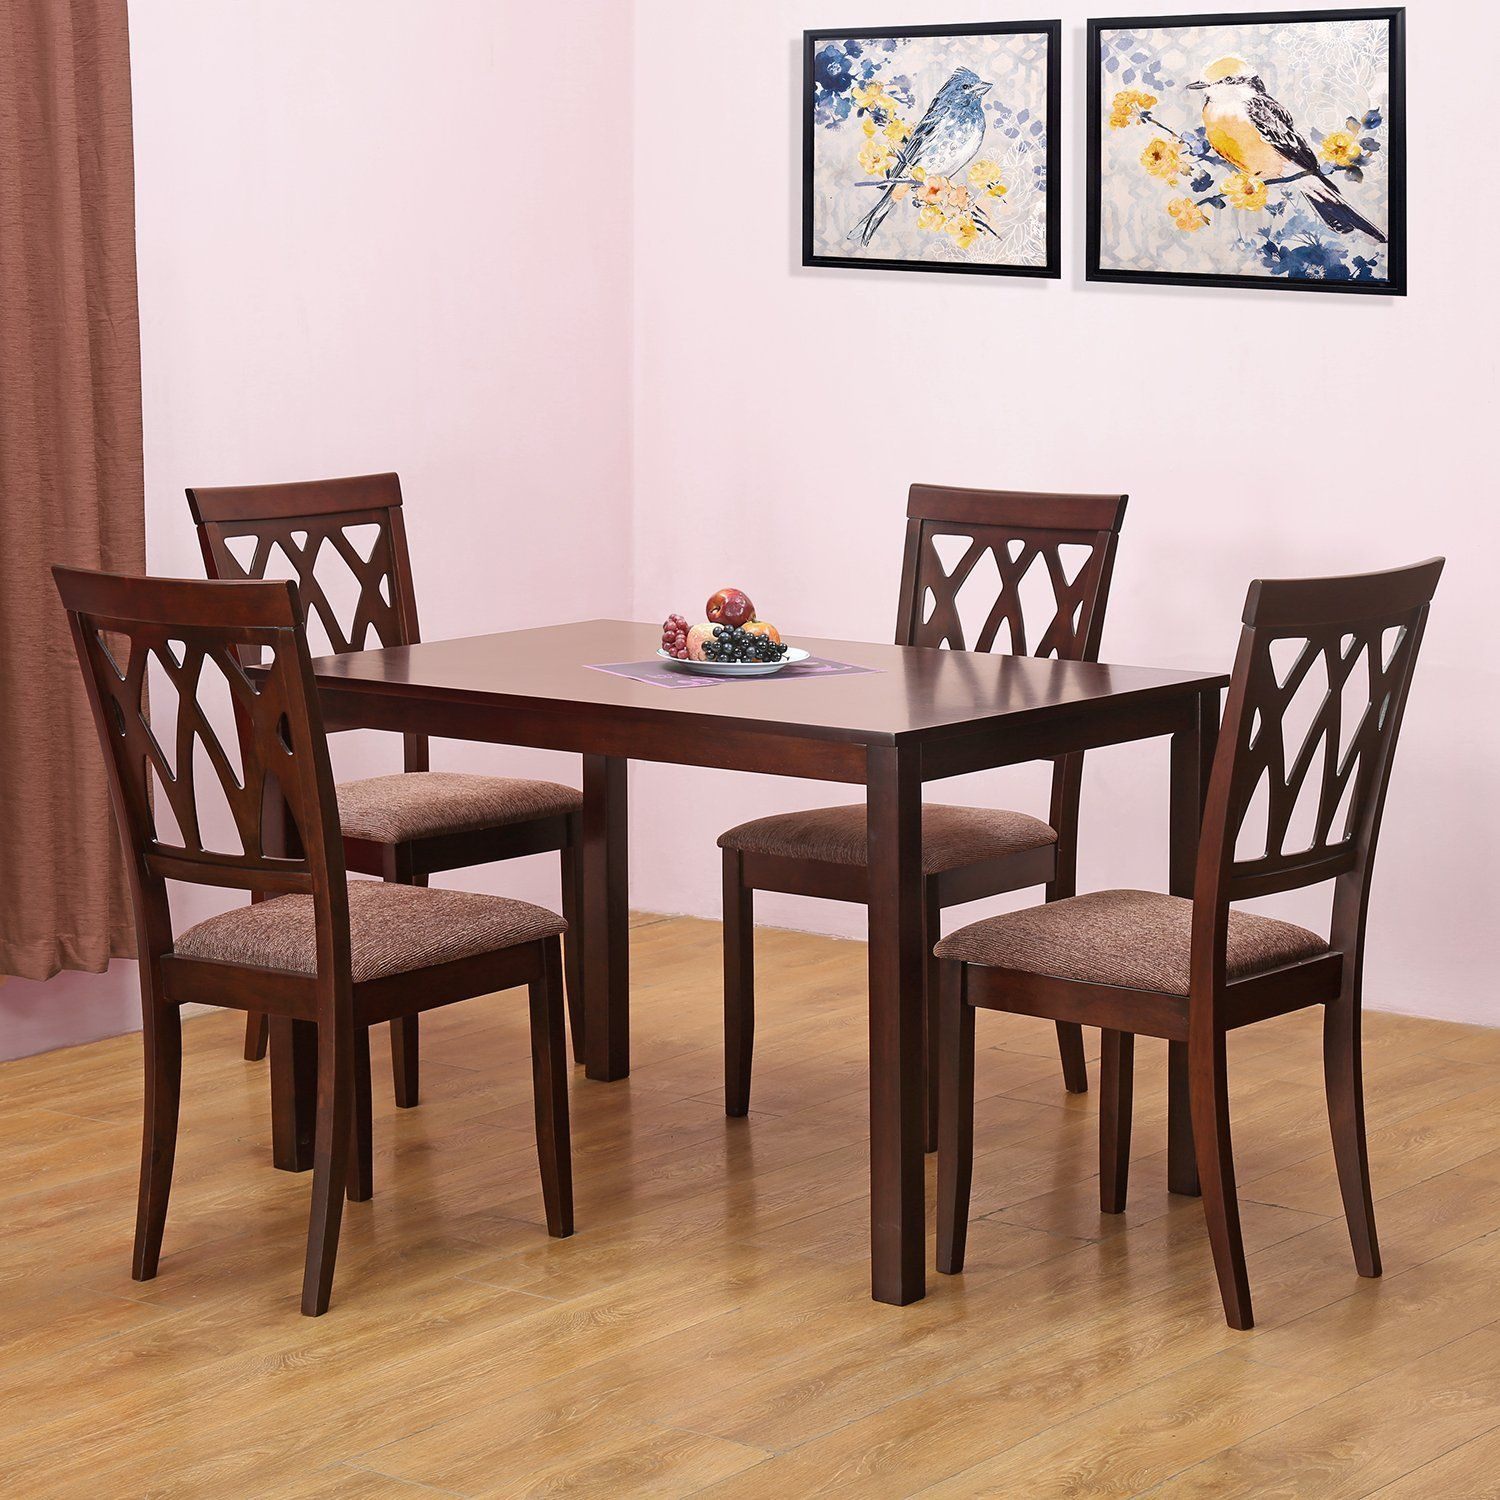 Contemporary Dining Room Sets For 4 • Faucet Ideas Site